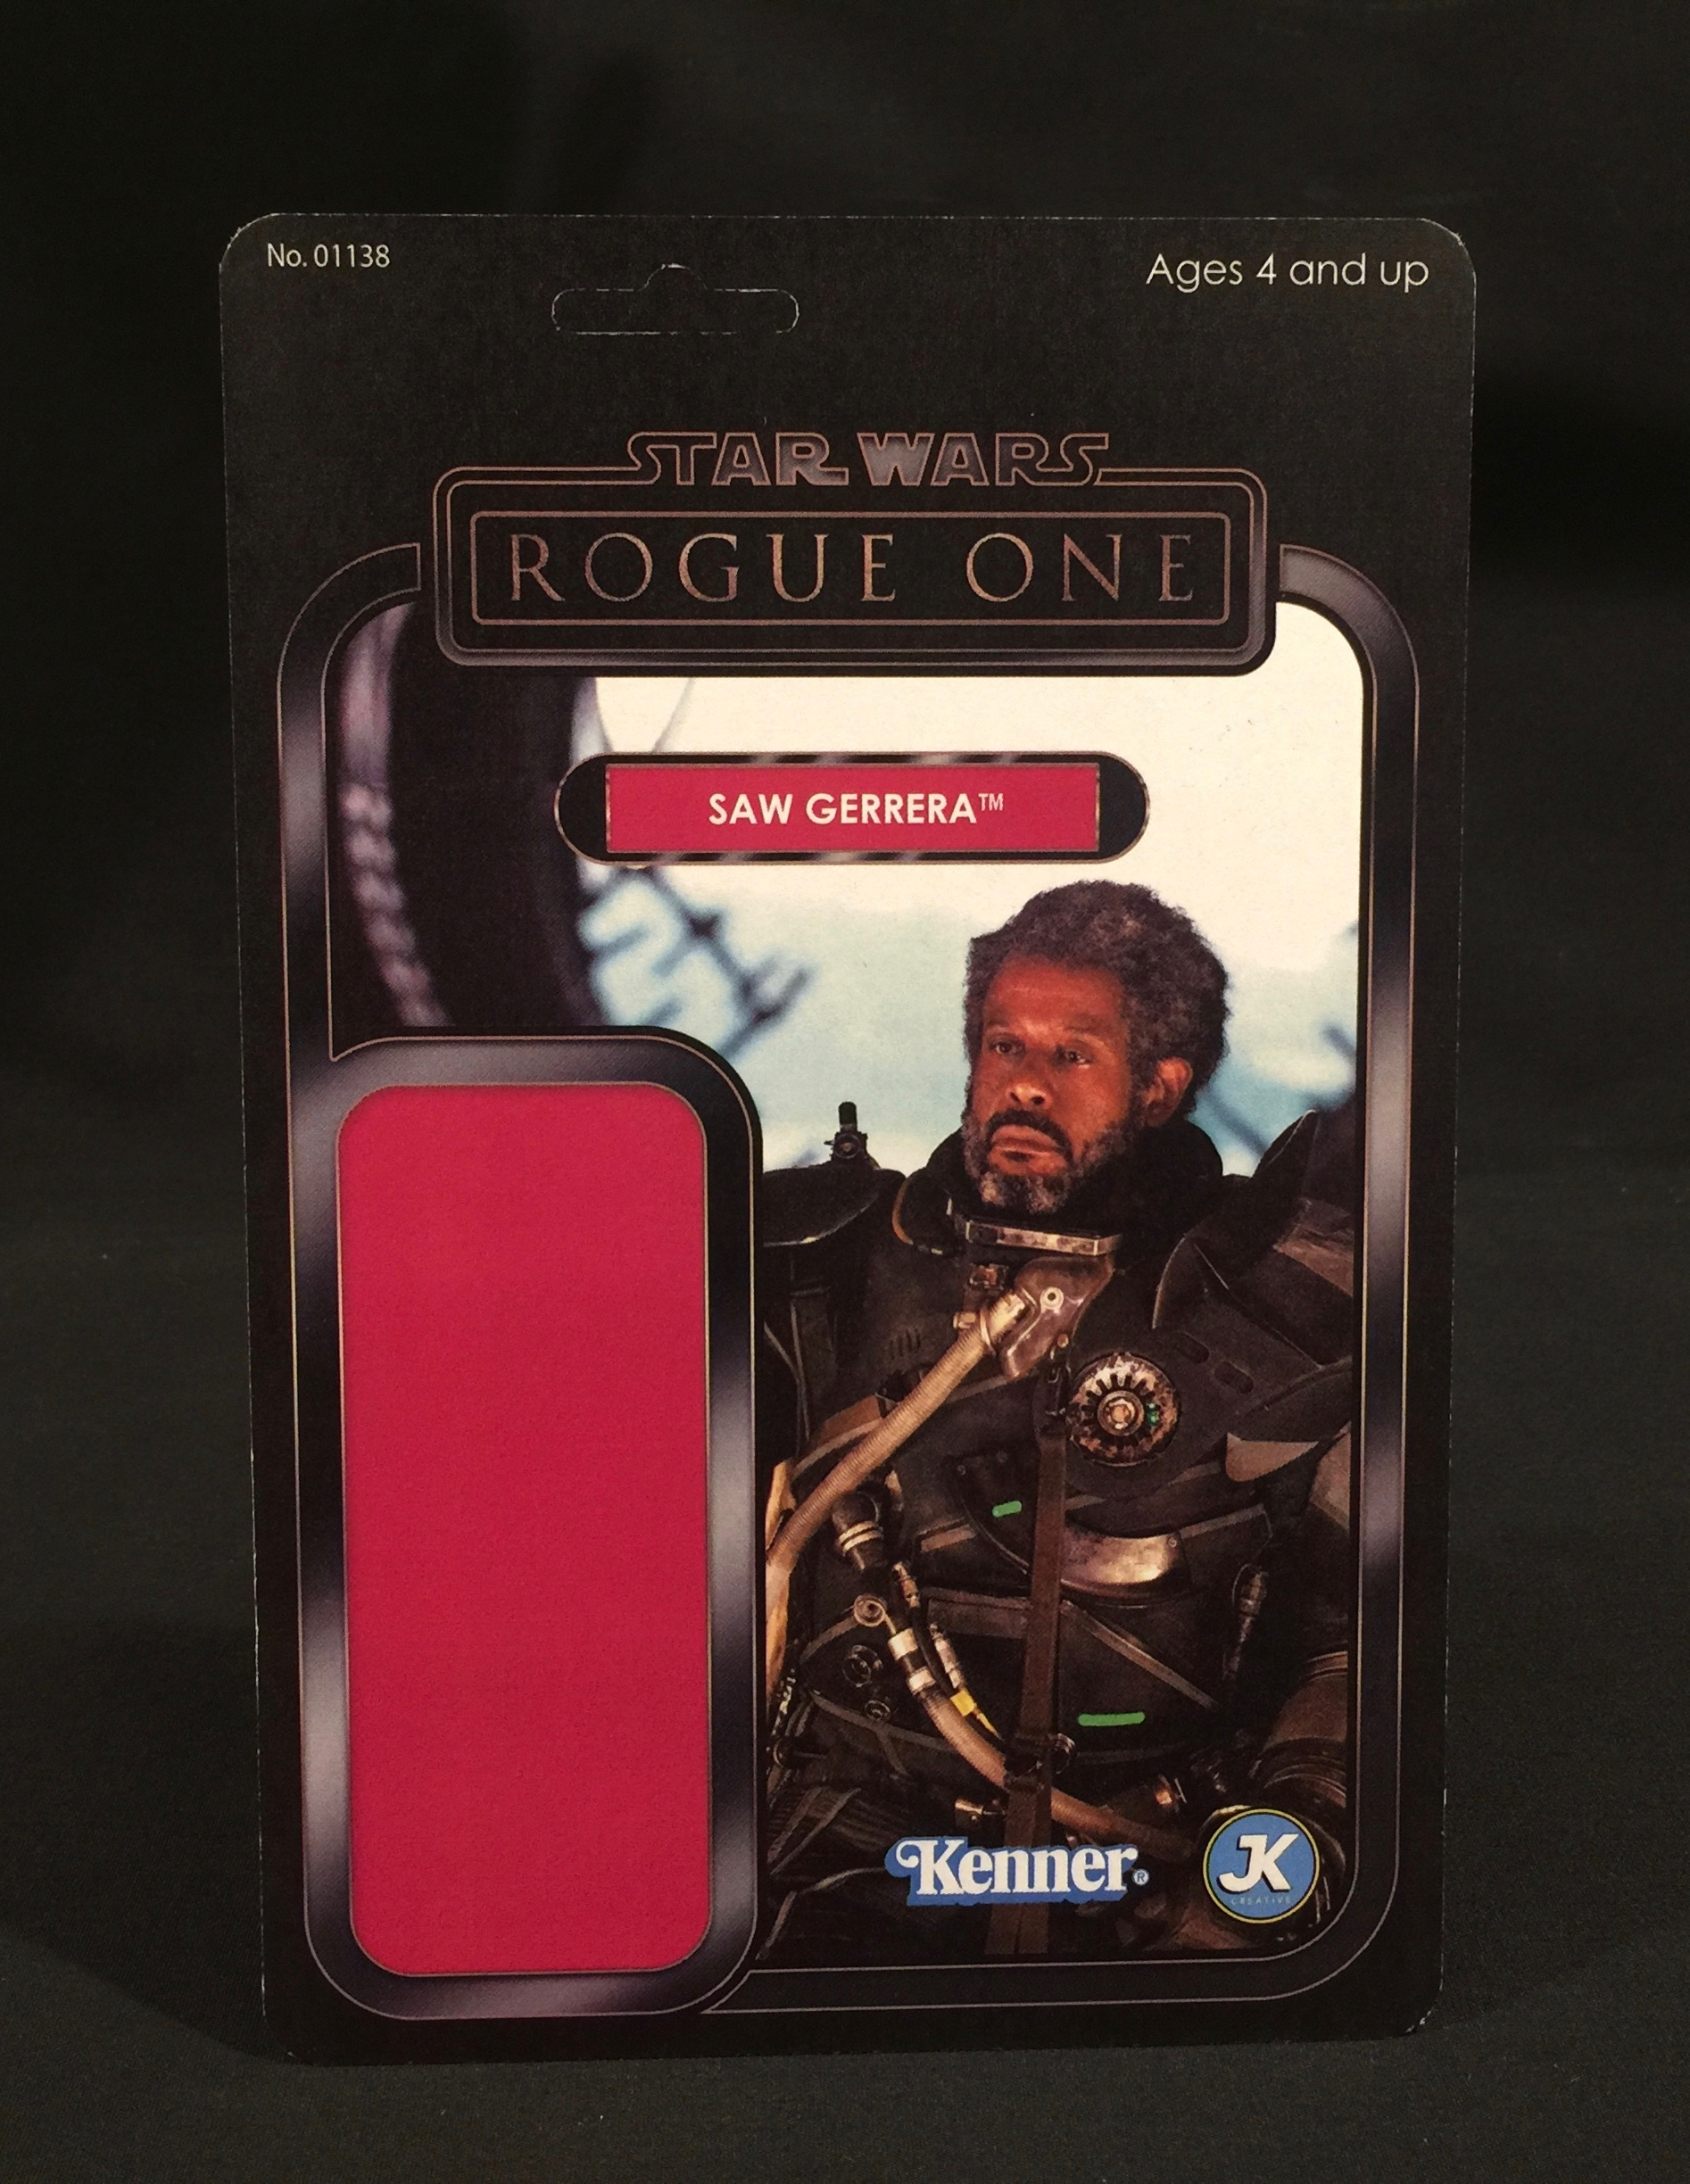 Saw Gerrera - Rogue One